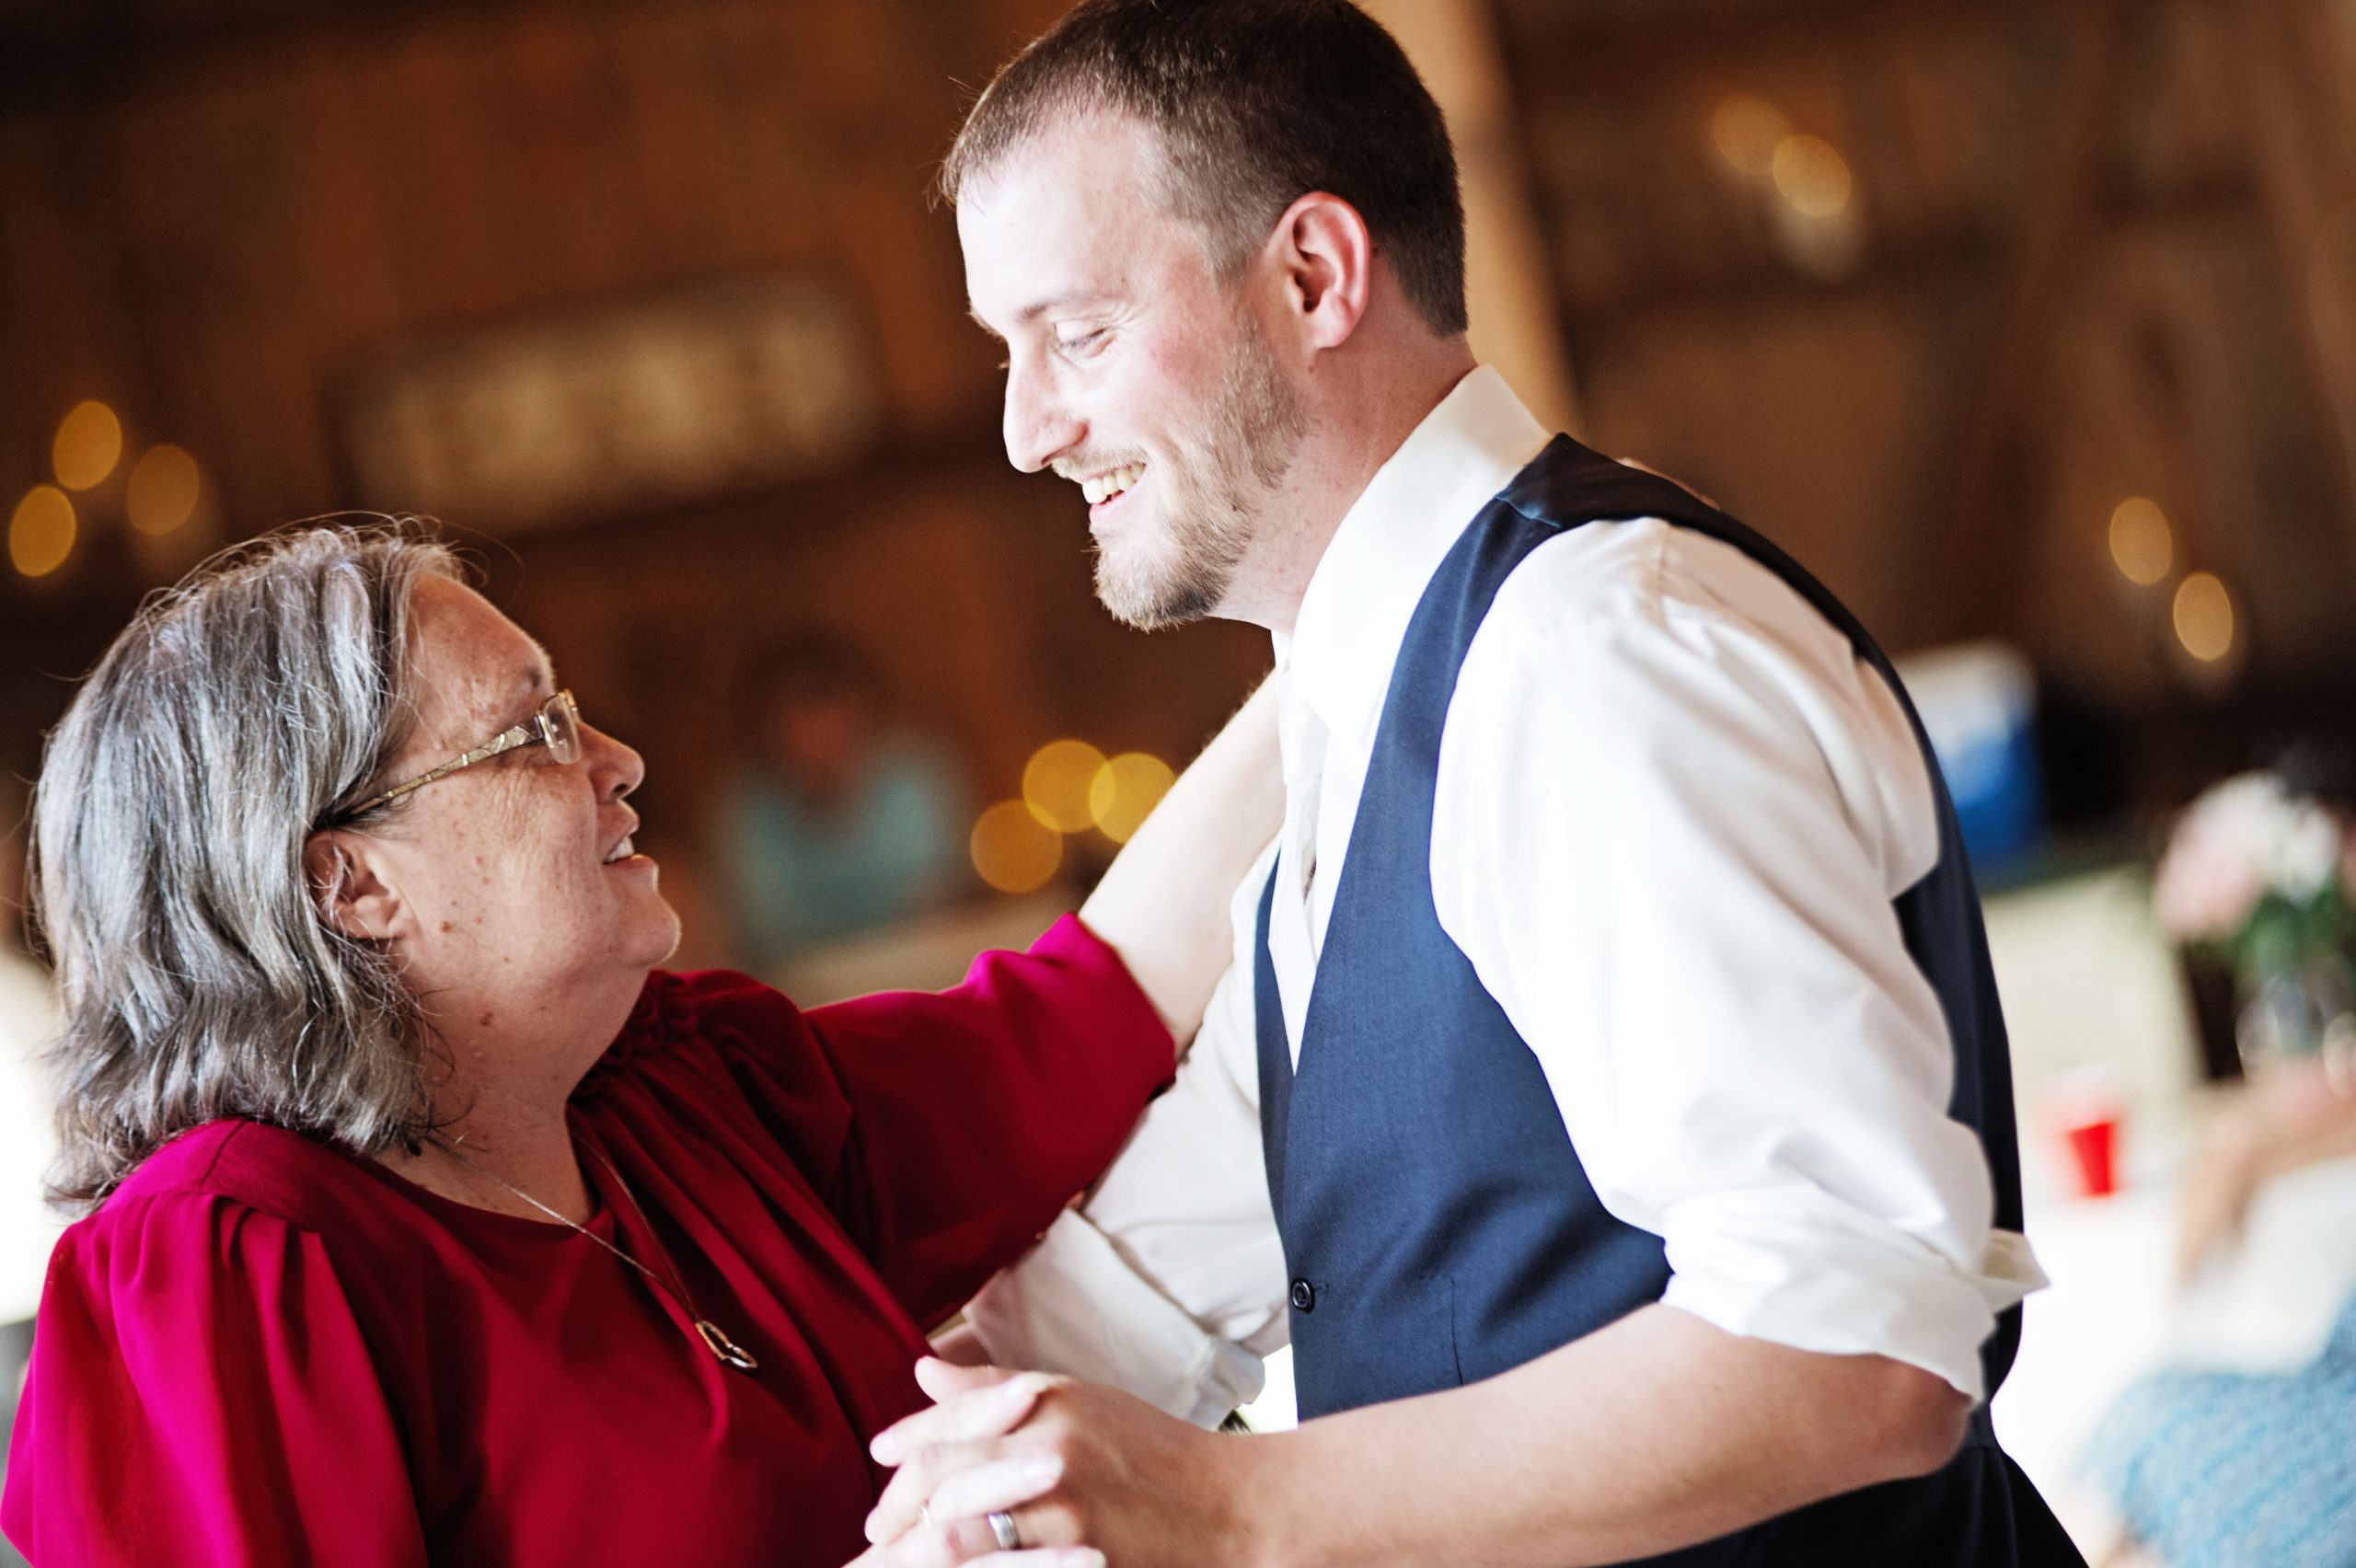 Mother and son dance is shared at Lakeview Farms of York, PA. Lovefusion Photography had the pleasure of capturing this moment. Featured on Dream Weddings.